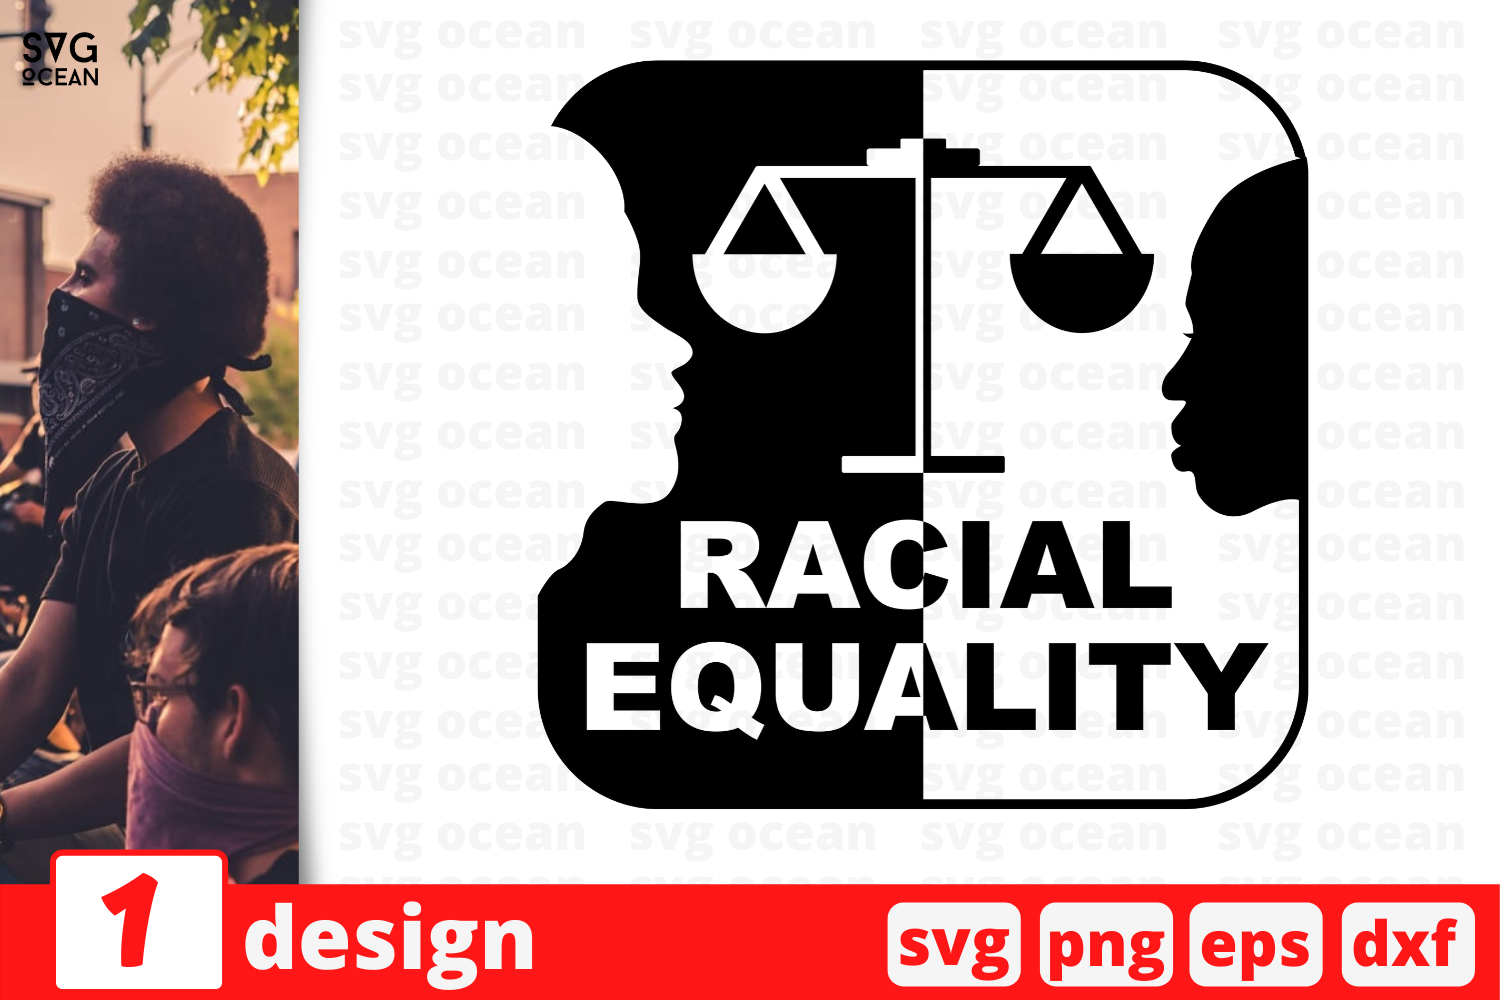 Download Free Racial Equality Graphic By Svgocean Creative Fabrica for Cricut Explore, Silhouette and other cutting machines.